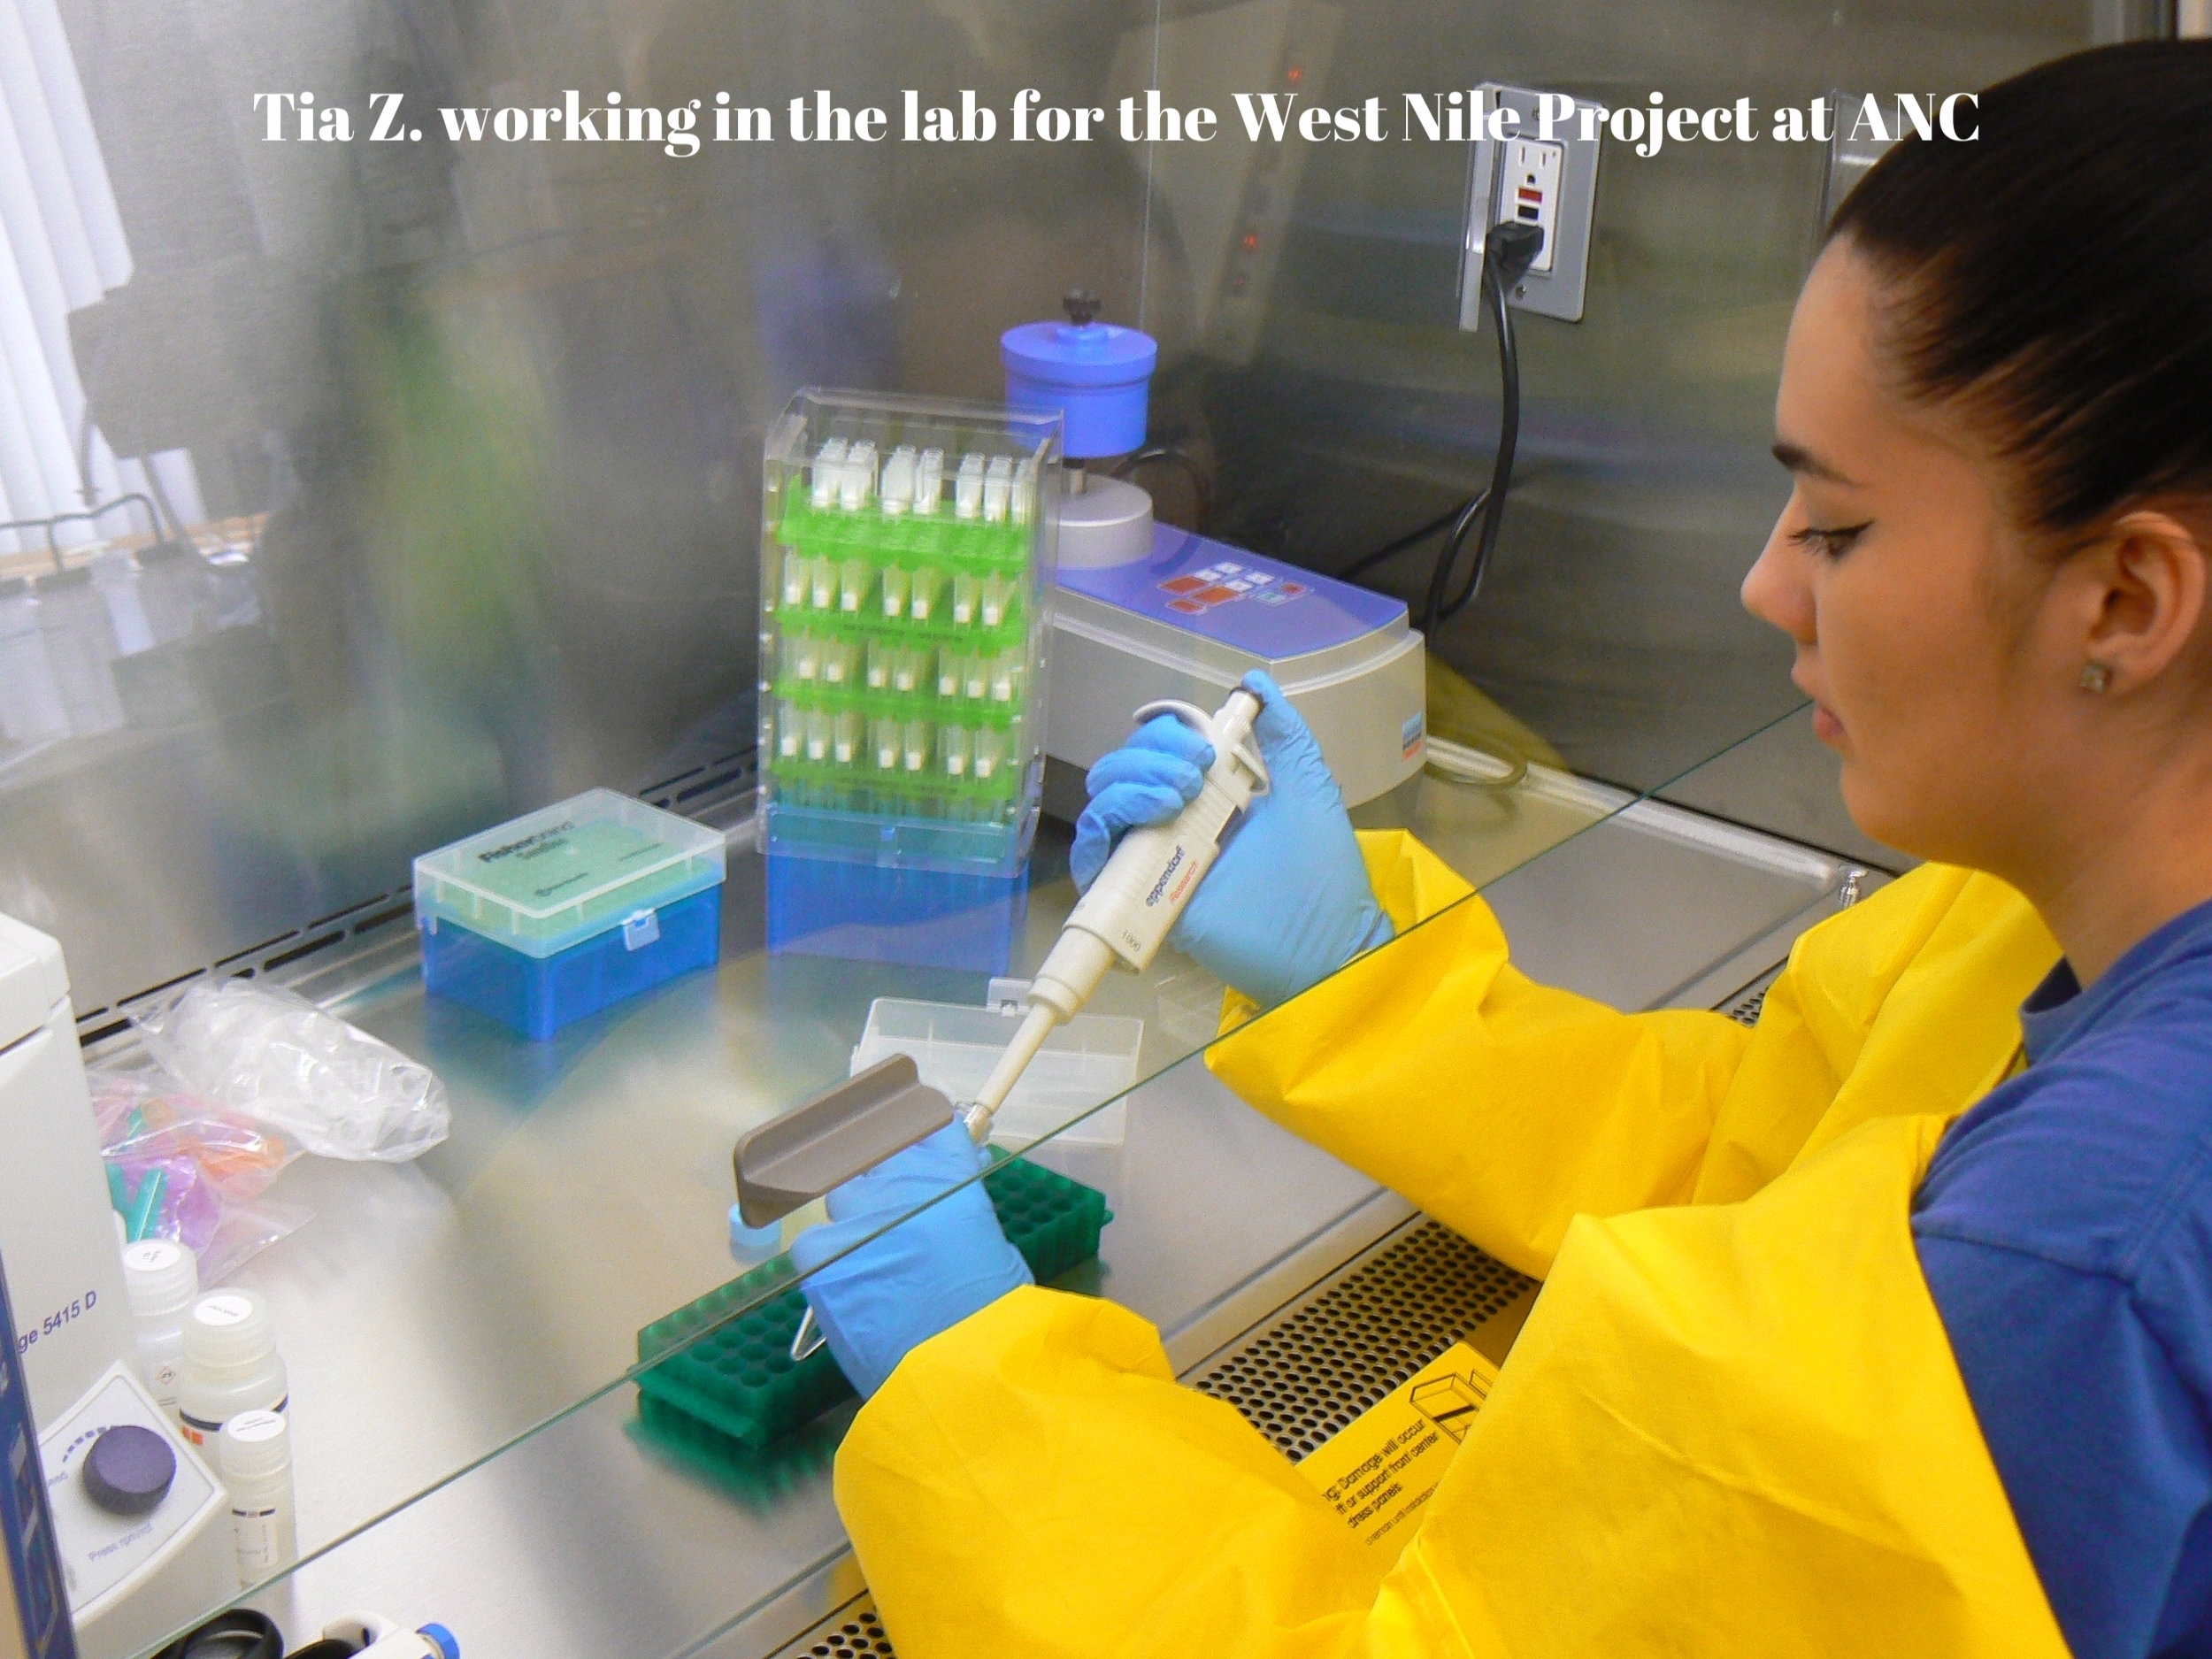 Tia Z.working in the lab for the West Nile Project at ANC